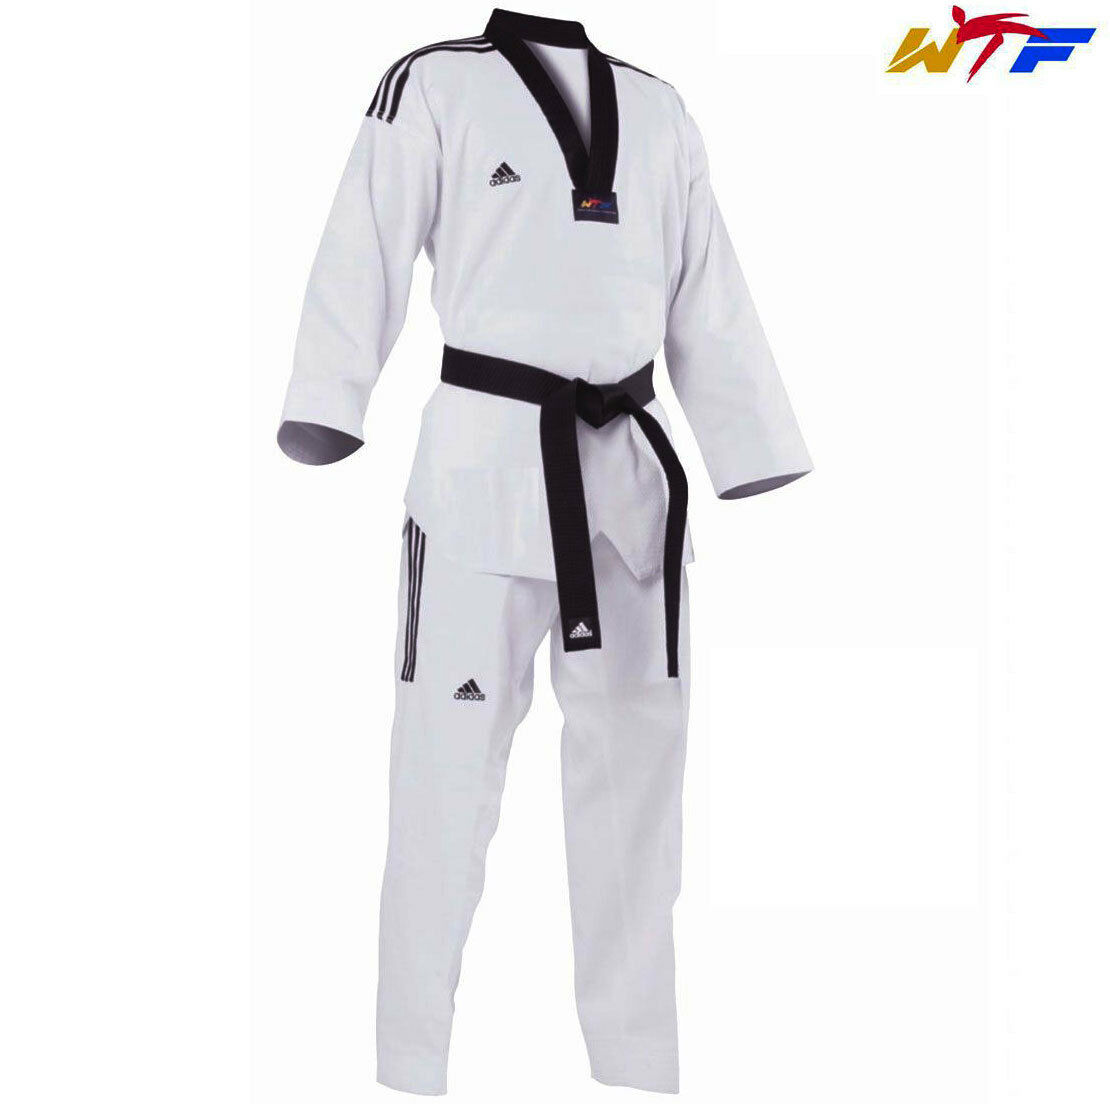 Adidas New 3S Grand Master II Uniform Dobok WTF Taekwondo uniform